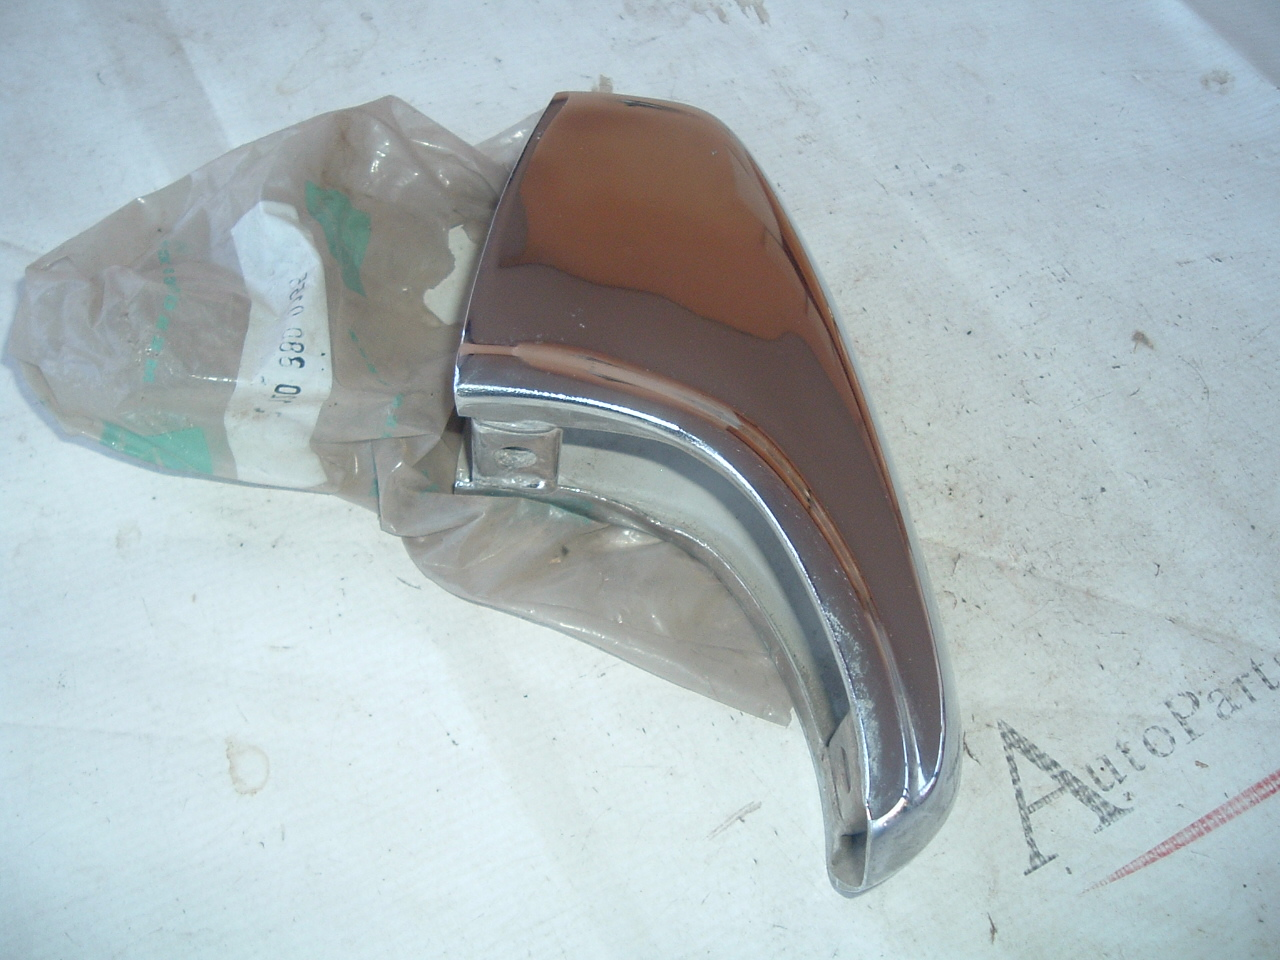 View ProductMERCEDES 180b 180Db 180Dc 190b 190Db 190Dc 200 D 230 LEFT REAR BUMPER nos new # 1208800155 (z 1208800155)